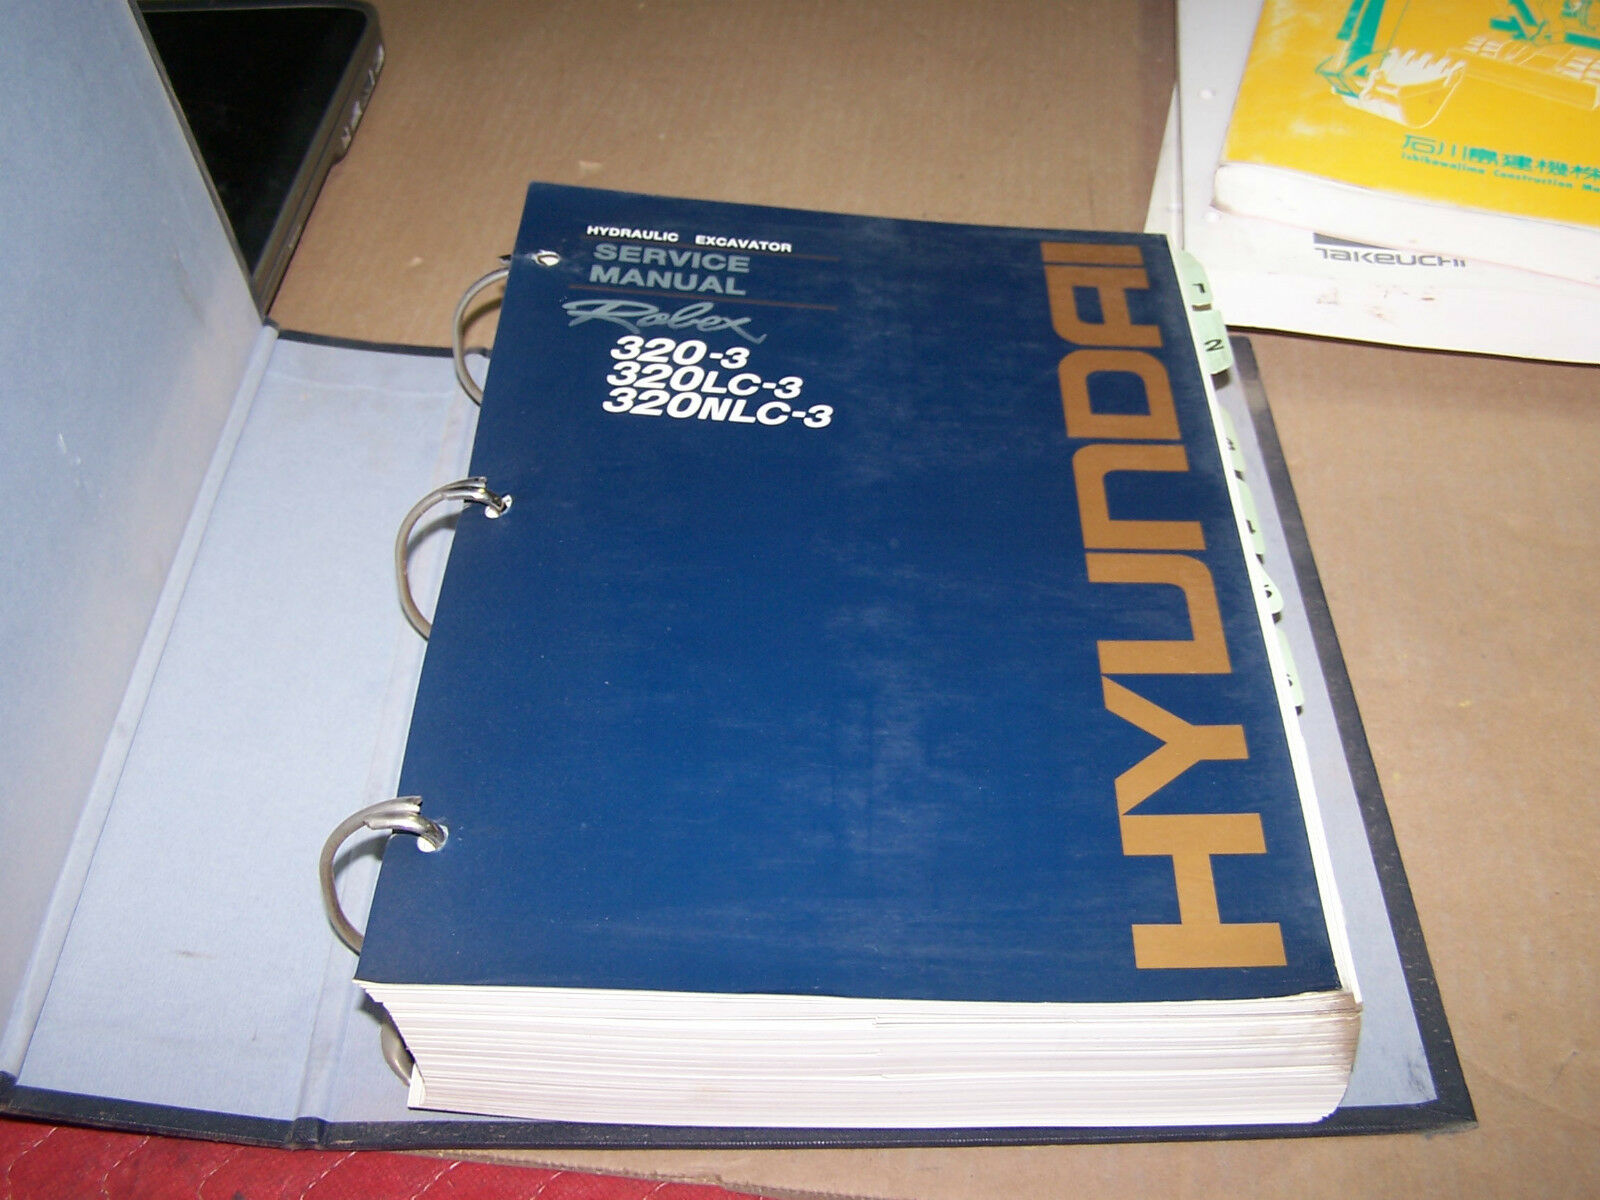 ... Hydraulic Excavator Service Manual 1 of 3Only 1 available ...